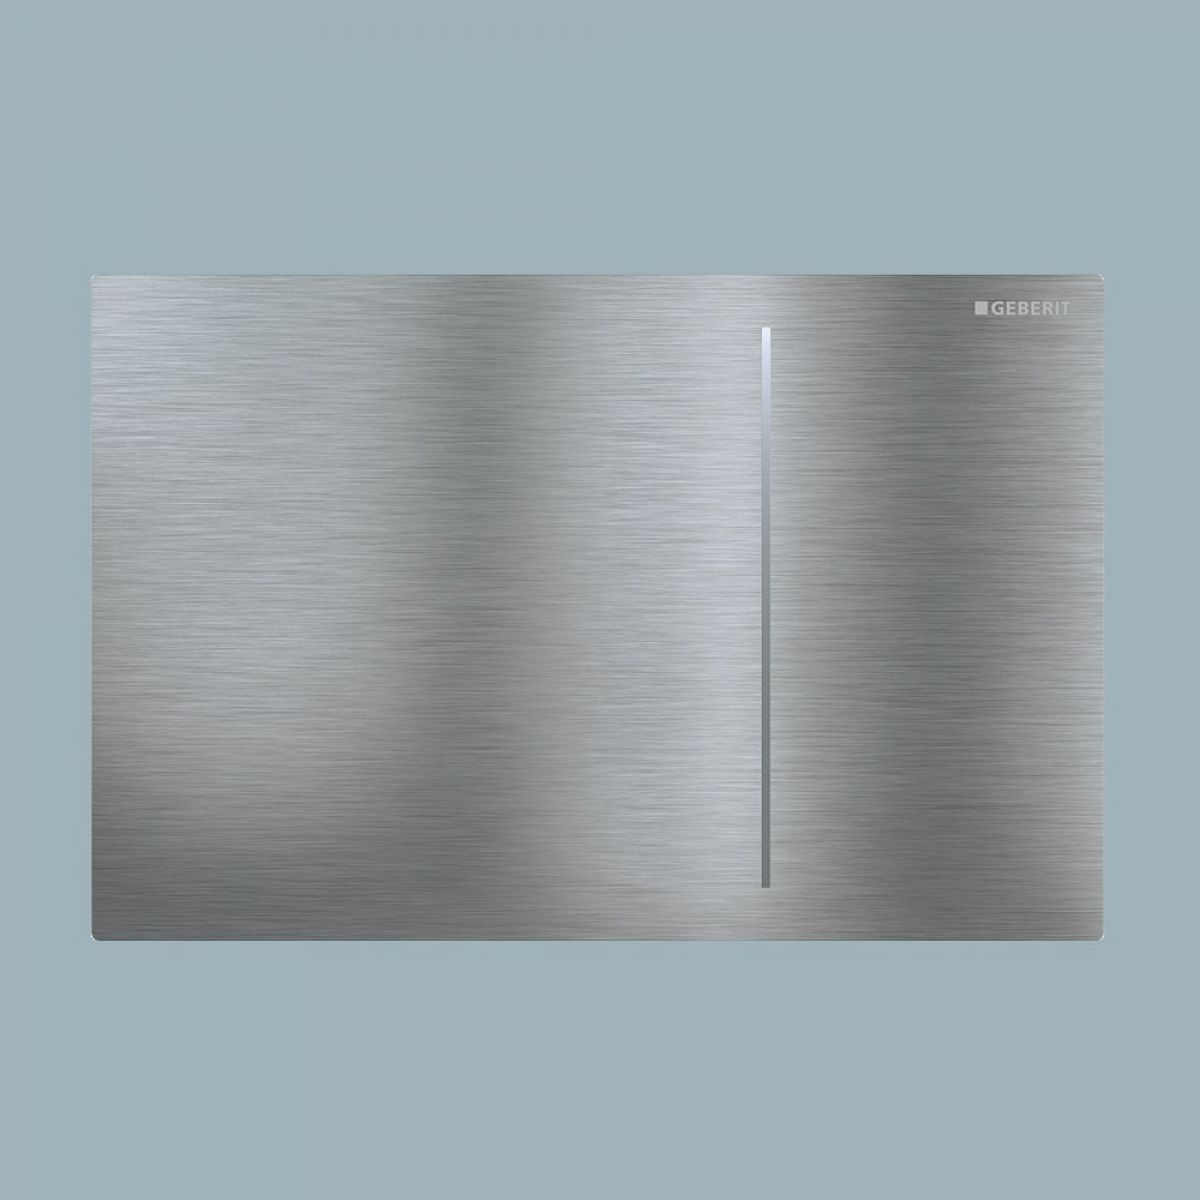 Fabriksnye Geberit Sigma70 Soft-Touch Dual Flush Plate : UK Bathrooms RU-23